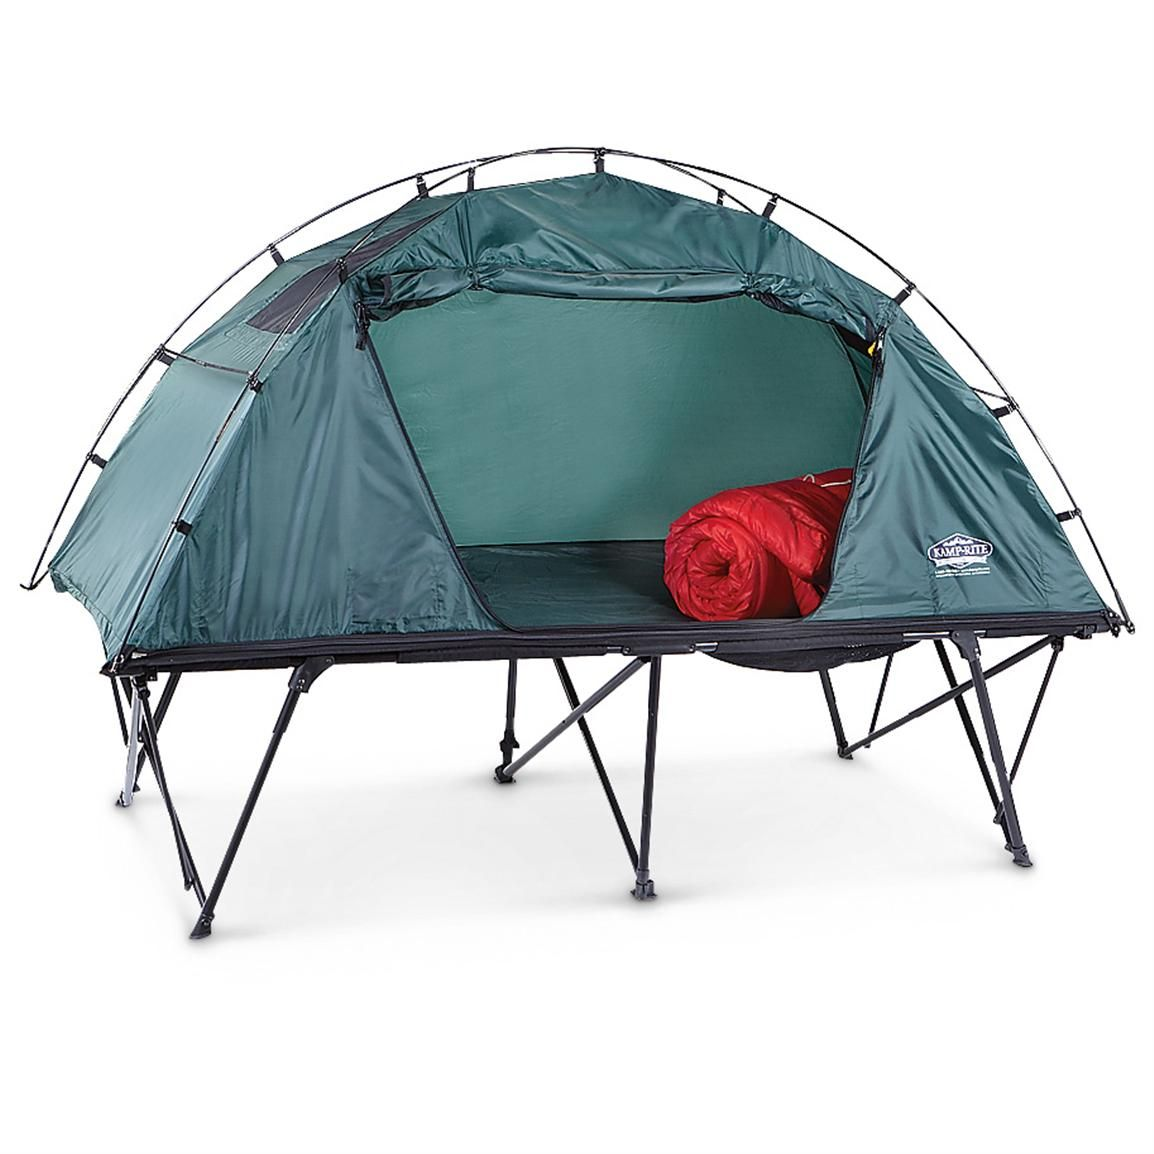 Not a fan of sleeping on the ground? Compact XL Foldable Tent Cot brings  sc 1 st  Pinterest & Not a fan of sleeping on the ground? Compact XL Foldable Tent Cot ...